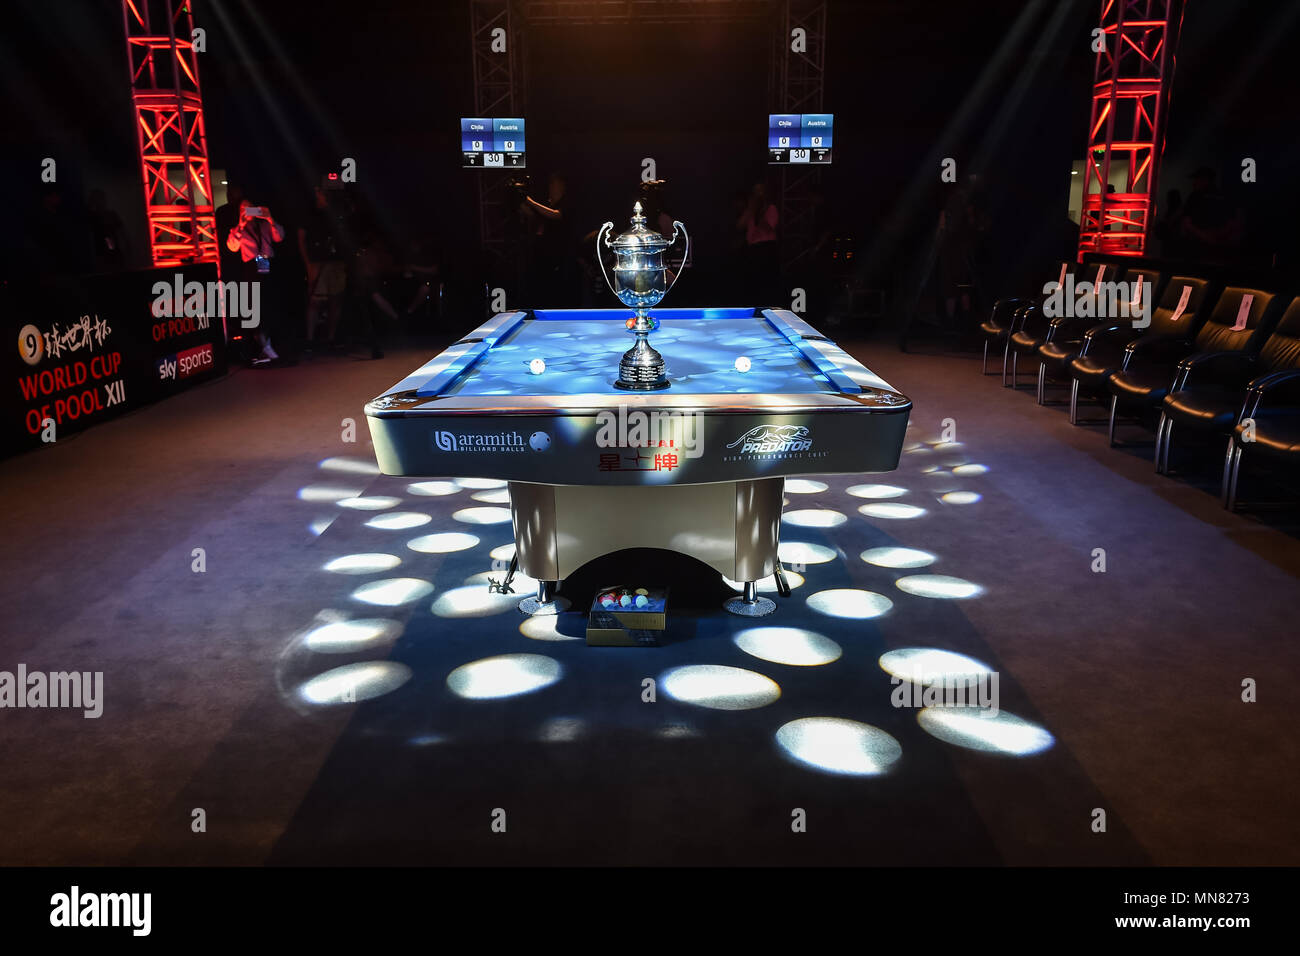 Shanghai, China. 15th May 2018. The official match cup shown on the Pool table during WORLD CUP of POOL 2018: OPENING CEREMONY at Luwan (Gymnasium) Arena on Tuesday, 15 May 2018. SHANGHAI, CHINA. Credit: Taka G Wu Credit: Taka Wu/Alamy Live News - Stock Image